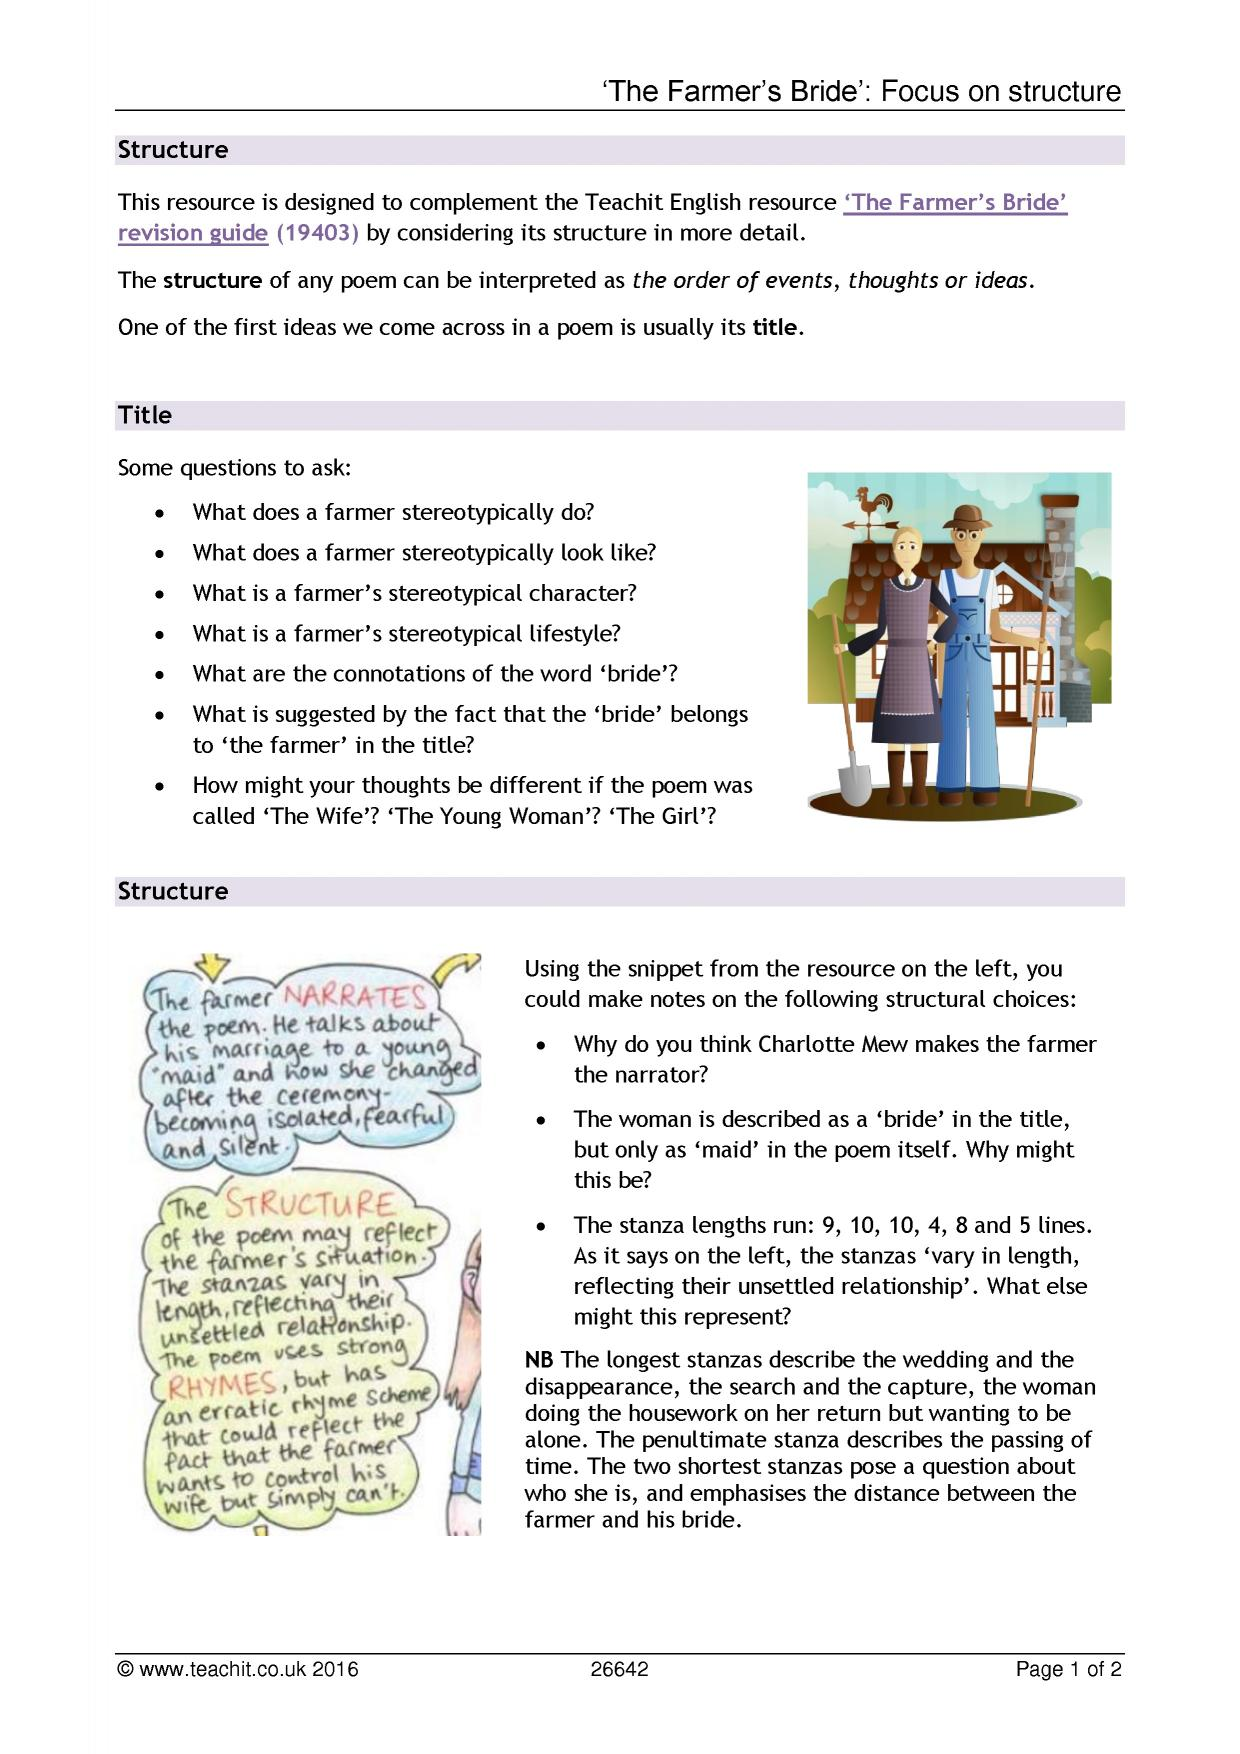 harmonium and nettles essay @lettoysbetoys when did your campain first start up i am currently writing my dissertation on 'girly girl culture' and its negative effects analysis vs essay sleep disorder psychology essay papers botanic artist essay eng3u essay research papers sites youtube thioglucose synthesis essay kenza j essaye encore play resisting.